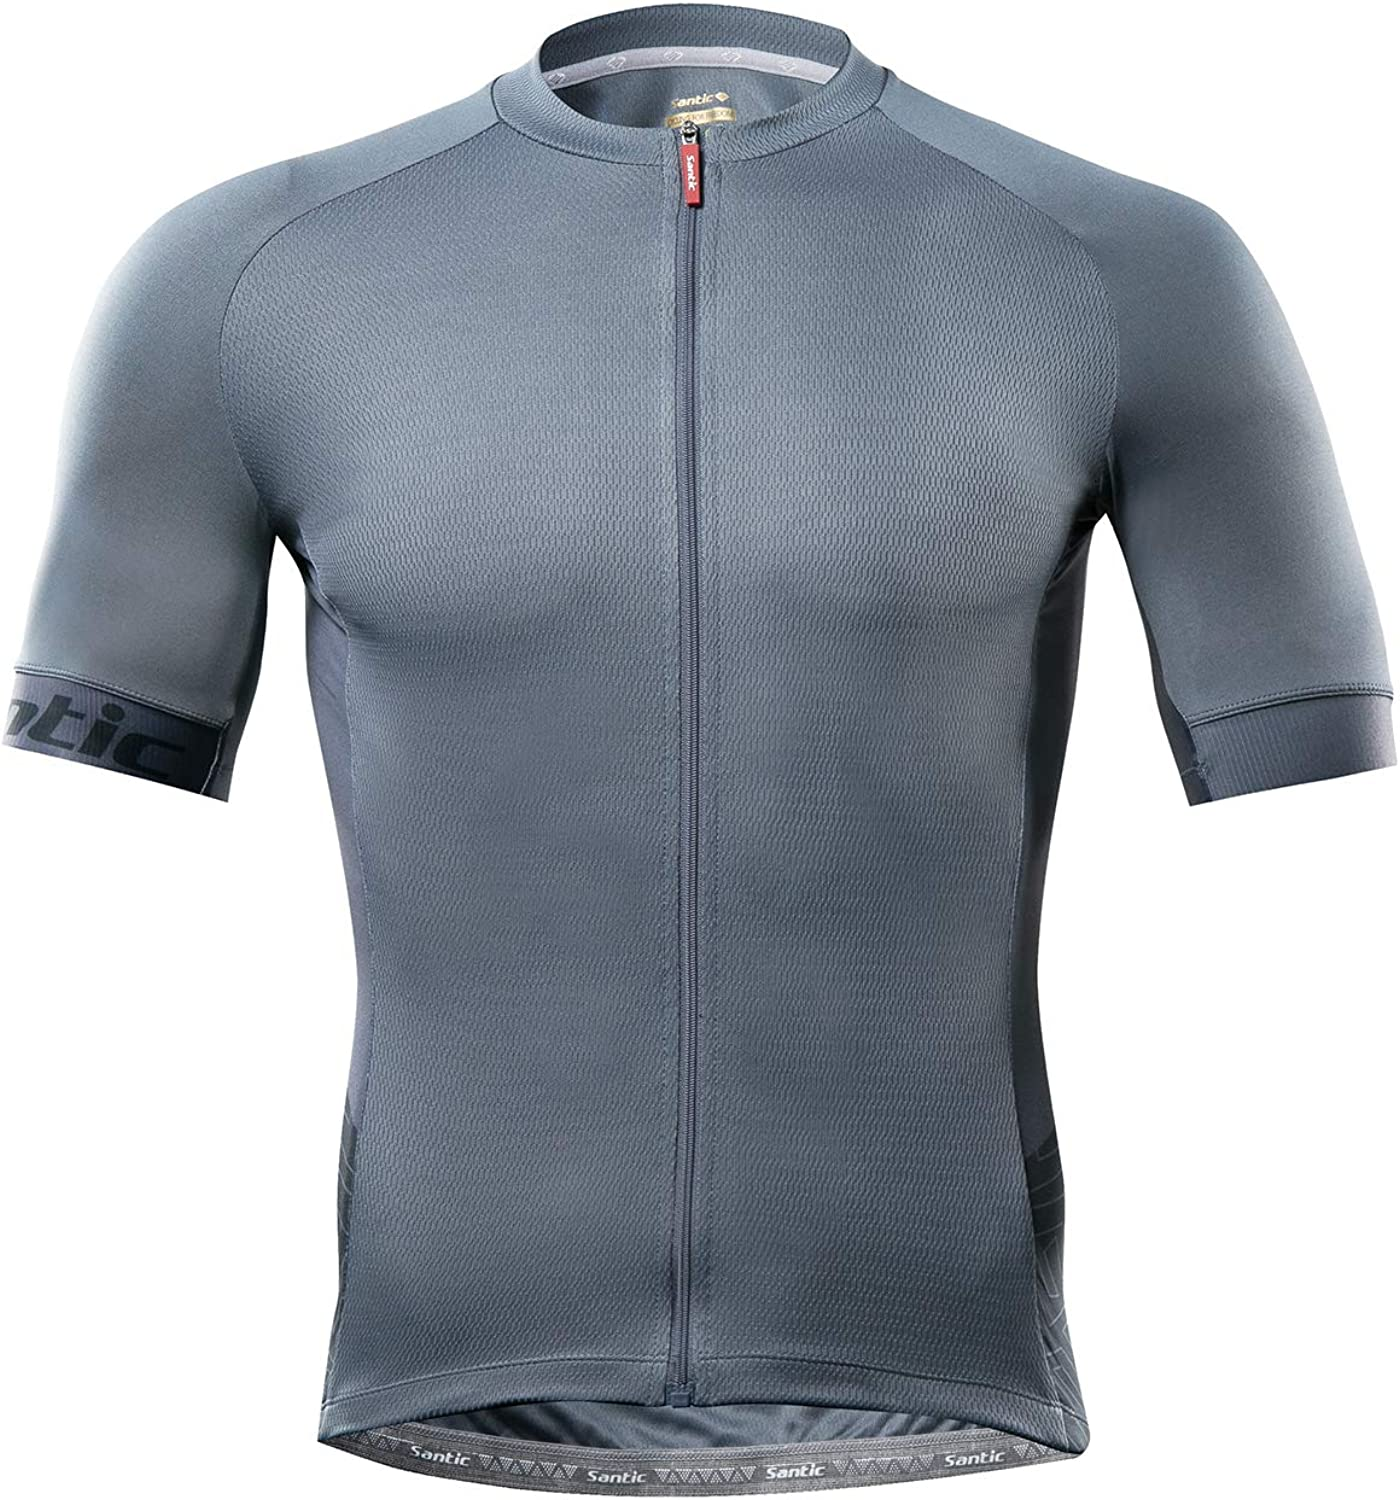 Santic Men's Cycling Jersey Short for Sleeve Max Complete Free Shipping 67% OFF Shirts Me Bike